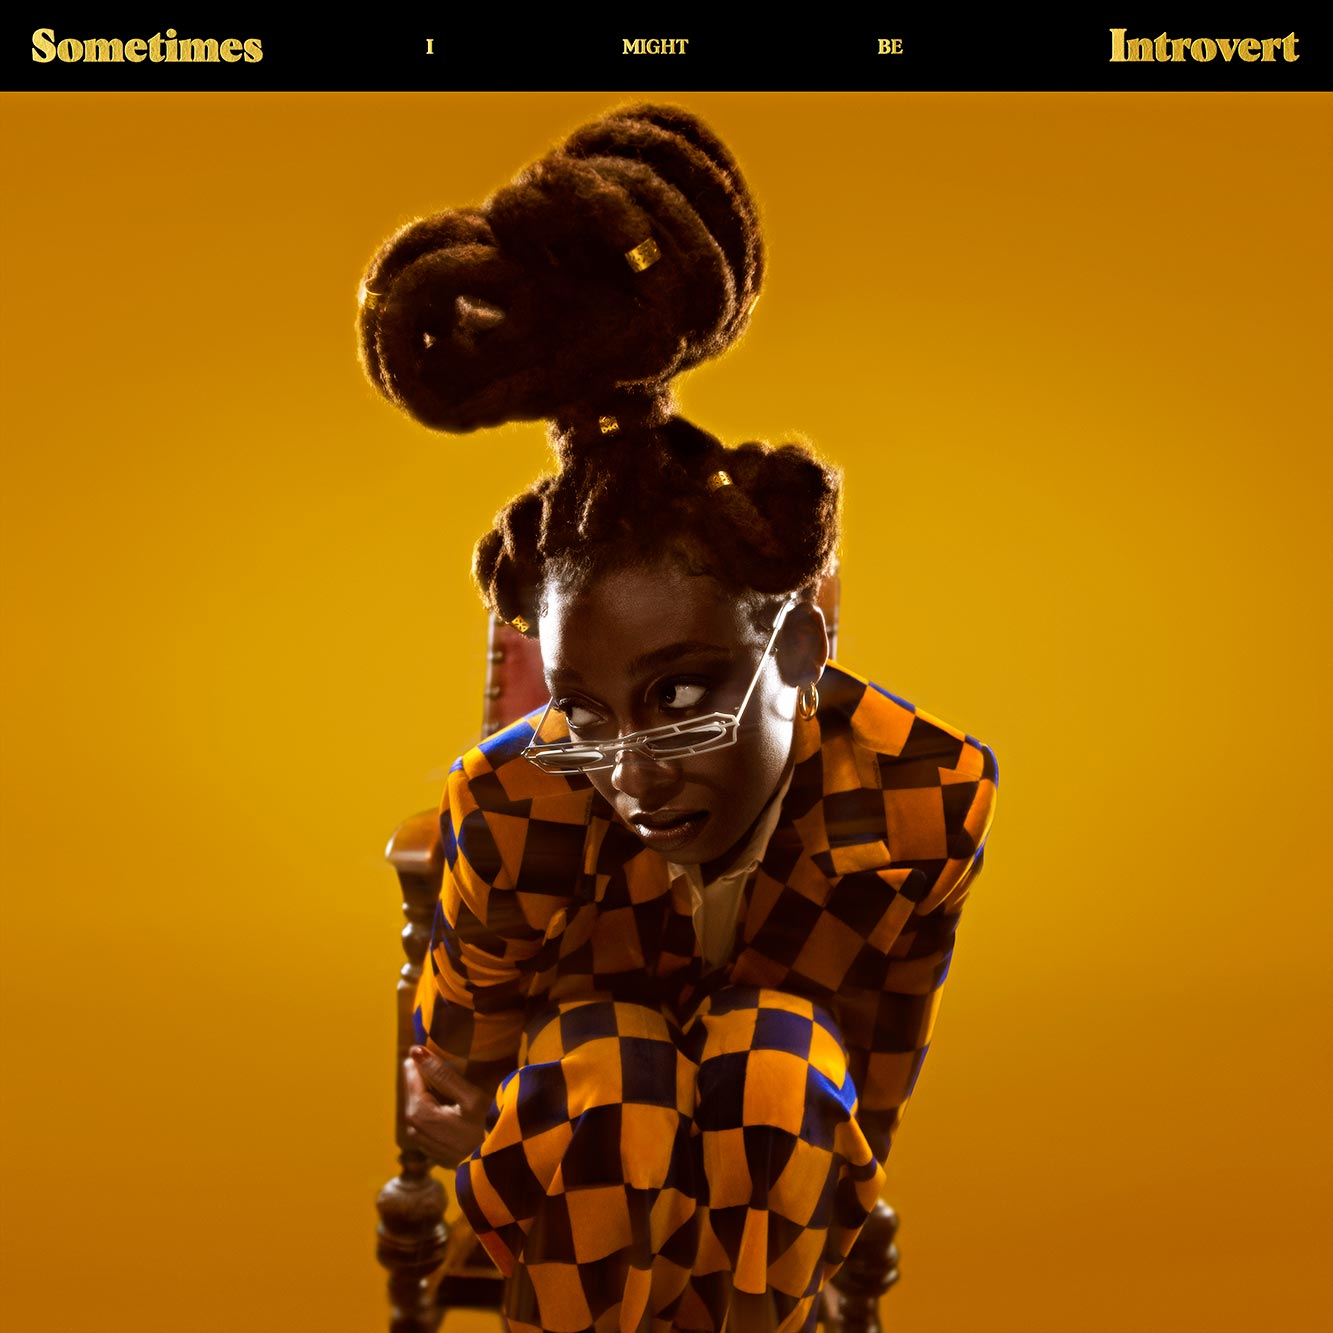 Sometimes I Might Be Introvert by Little Simz